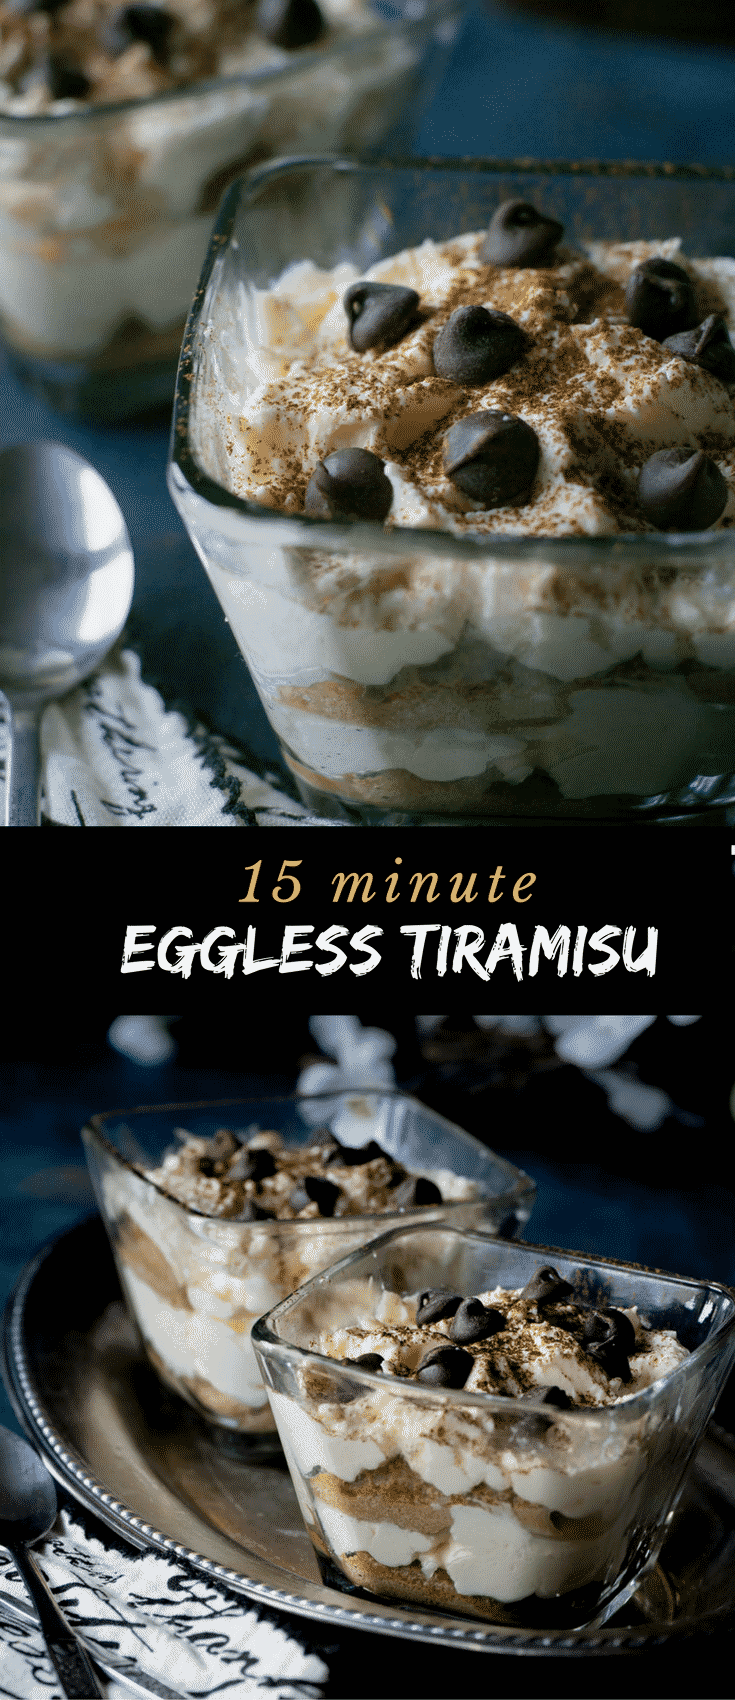 You'll enjoy making this Tiramisu without raw eggs since 15 minutes is all it takes.